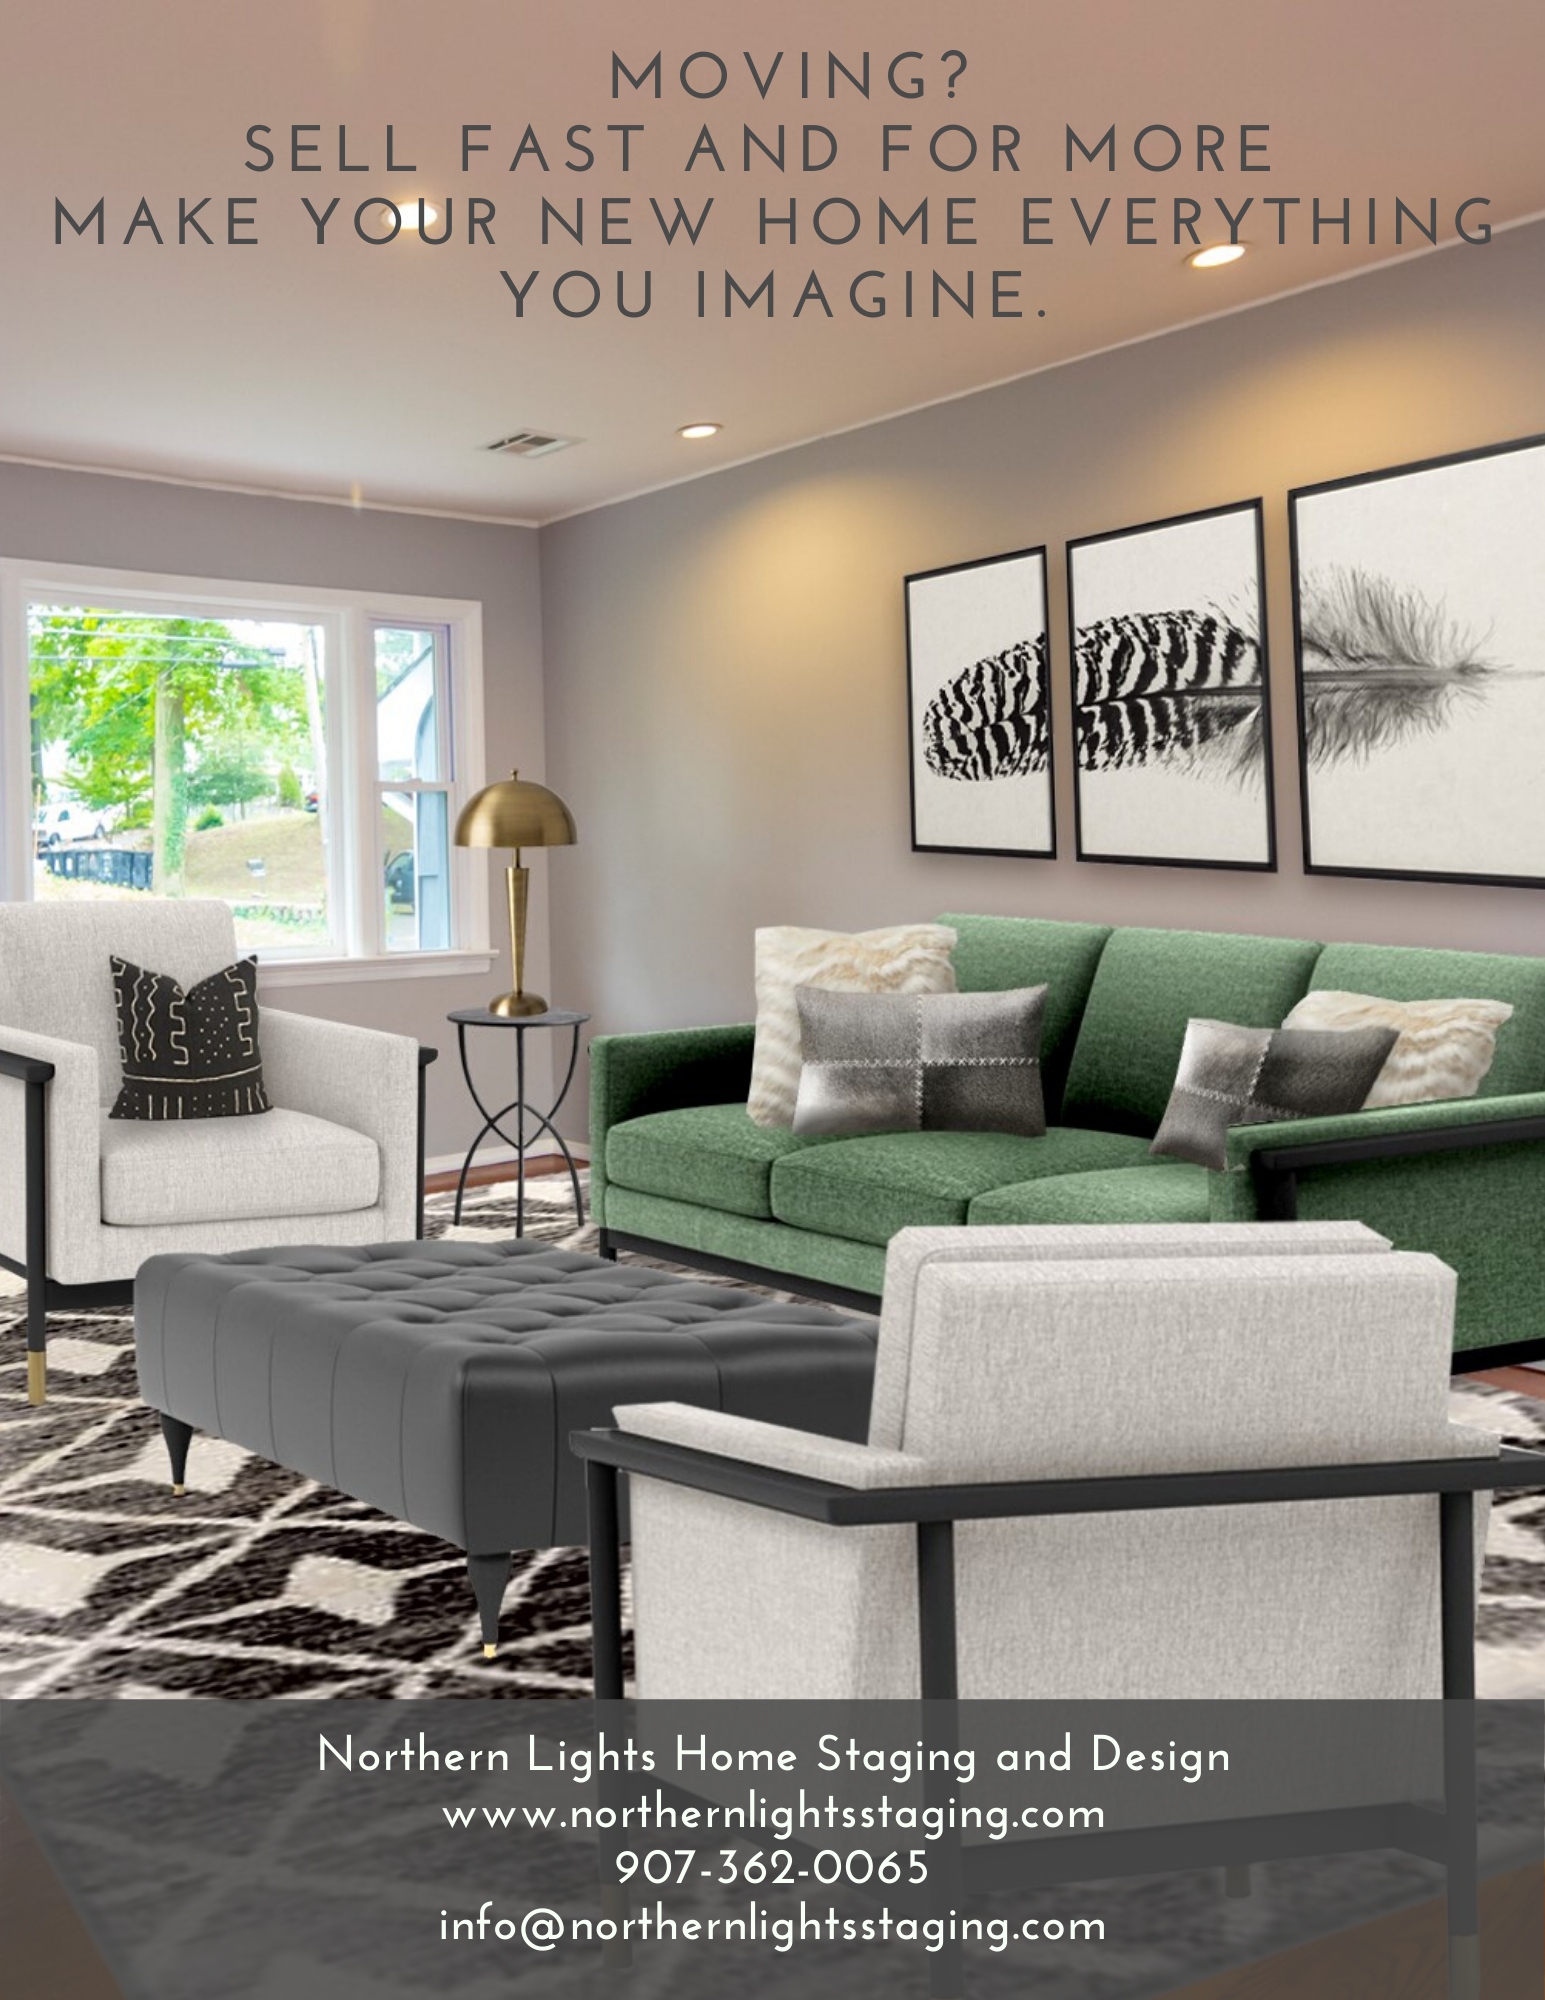 Northern Lights Home Staging and Design home staging, color and design services for home sellers and home buyers.